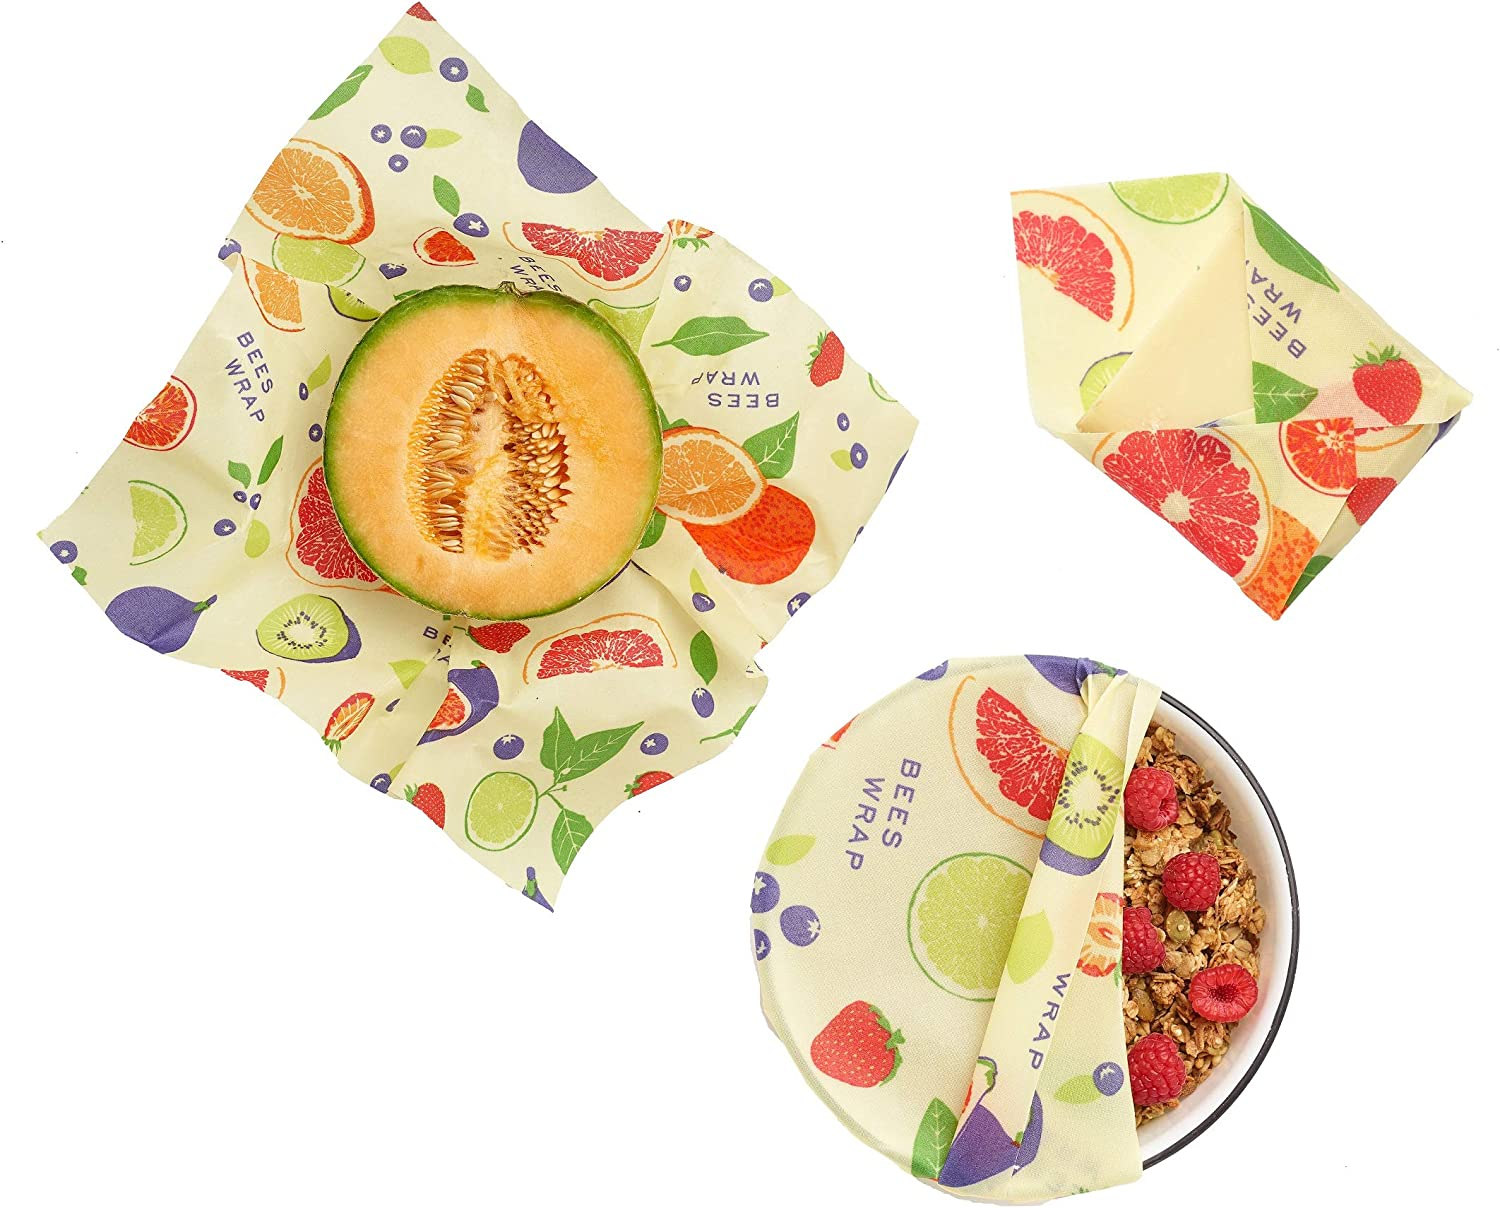 Plastic Free Bee's Wrap Assorted 3 Pack, Made in USA, Eco Friendly Reusable Beeswax Food Wraps, Sustainable, Zero Waste Alternative for Food Storage - 1 Small, 1 Medium, 1 Large (Fresh Fruit Print)